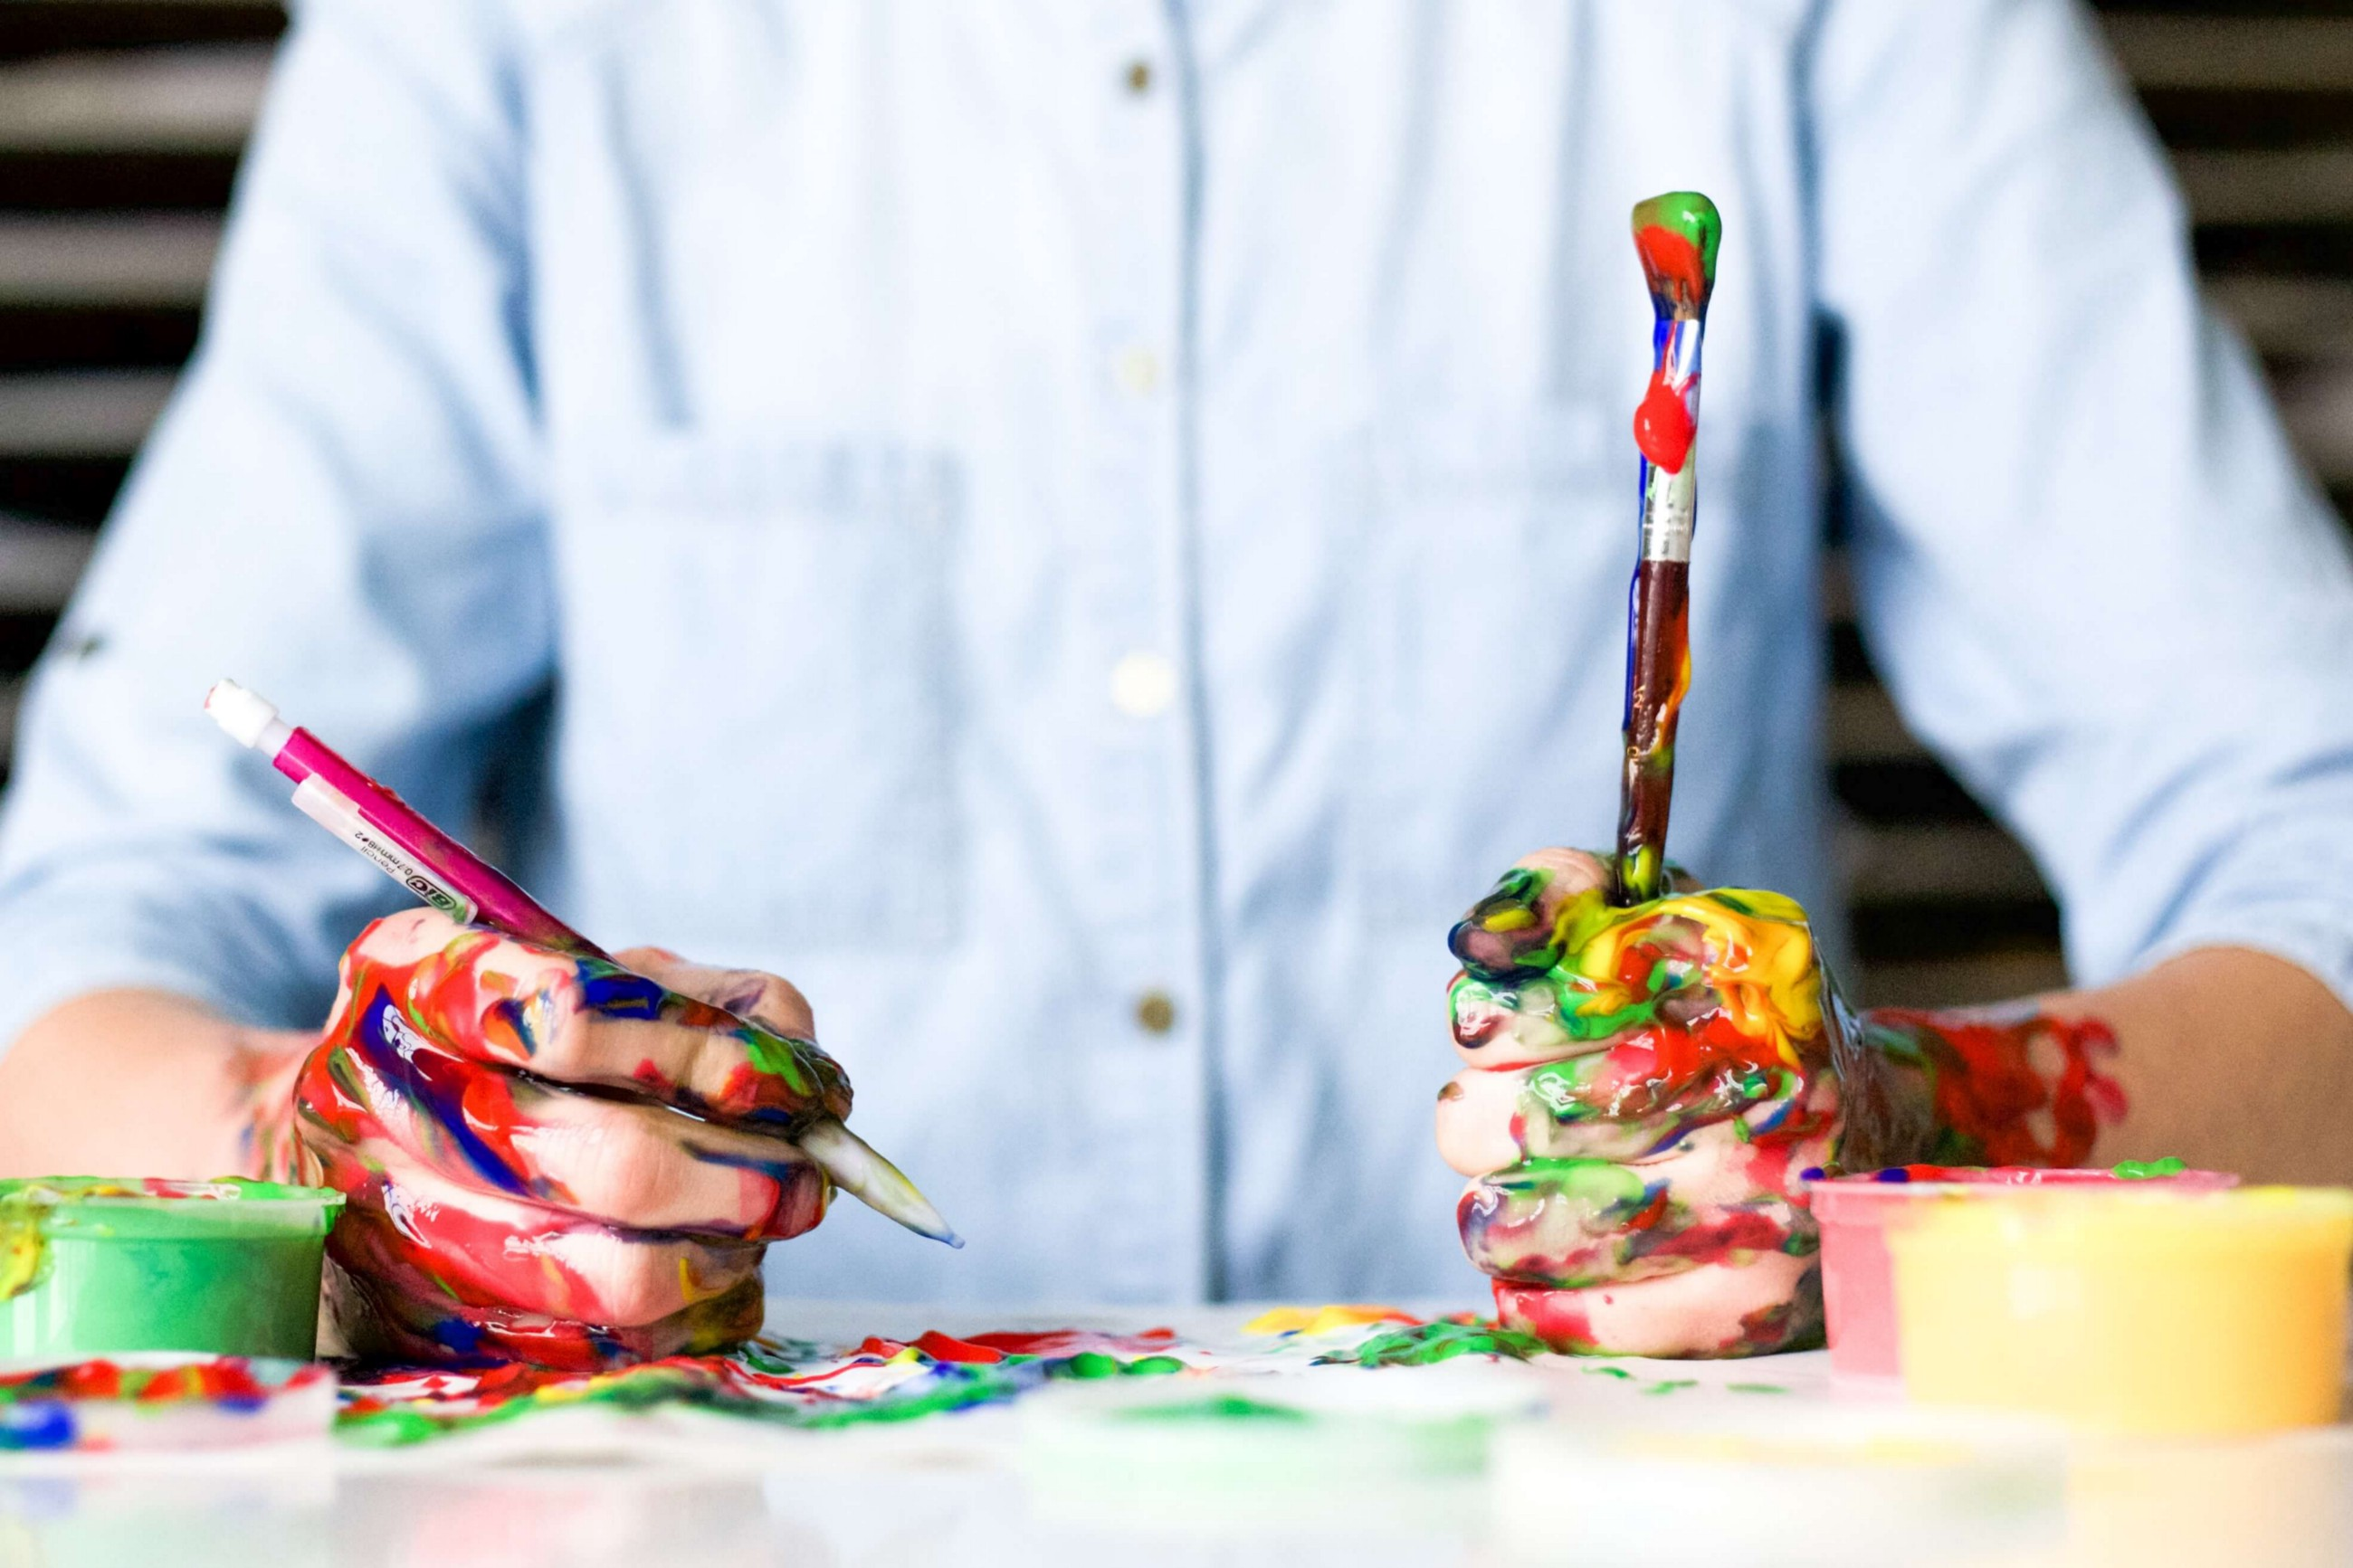 The 7 Habits Of Highly Creative People